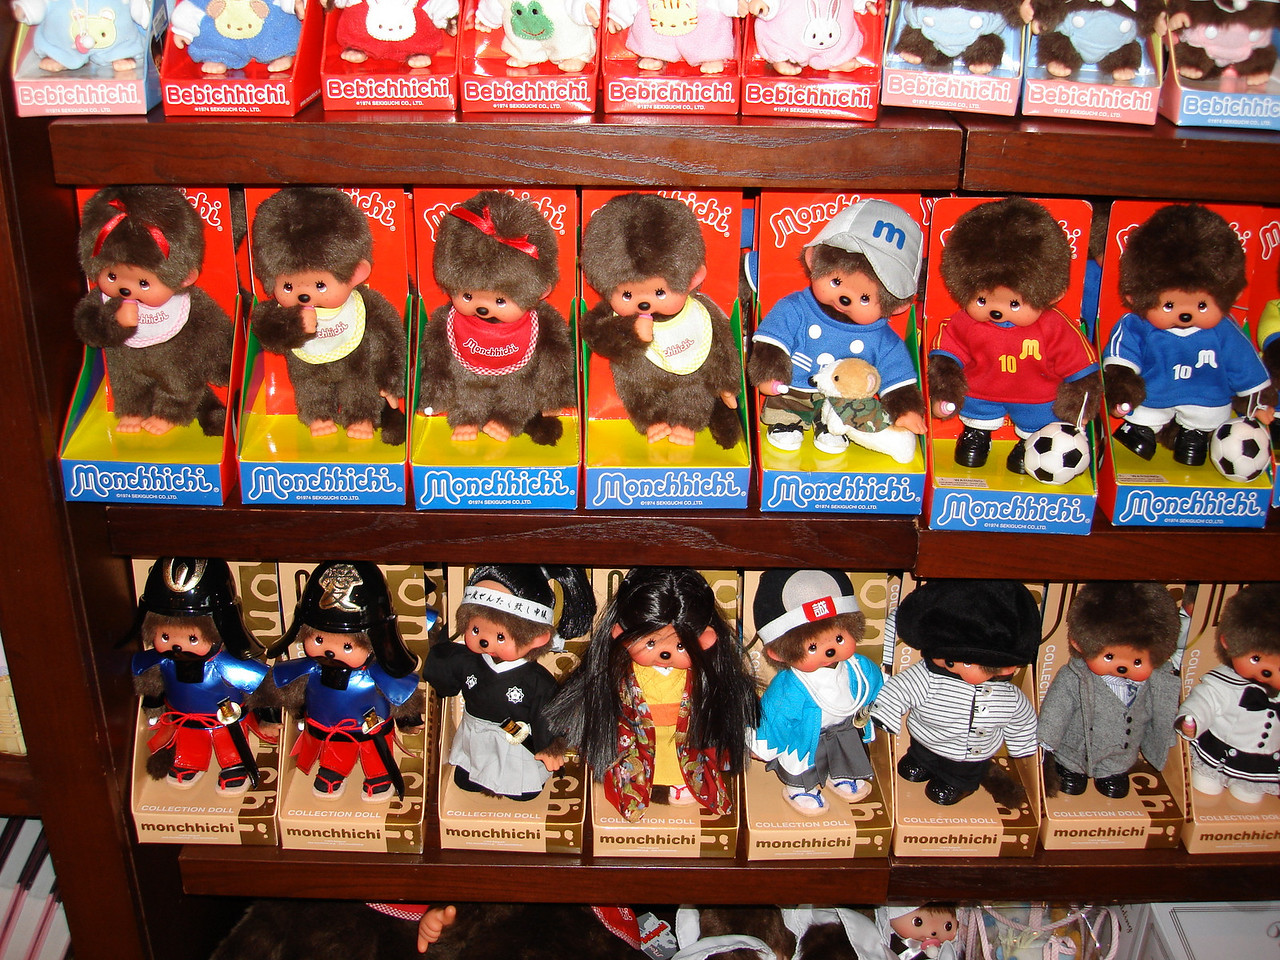 Had one of these growing up. Never knew it came from Japan. Love those Monchhichi.